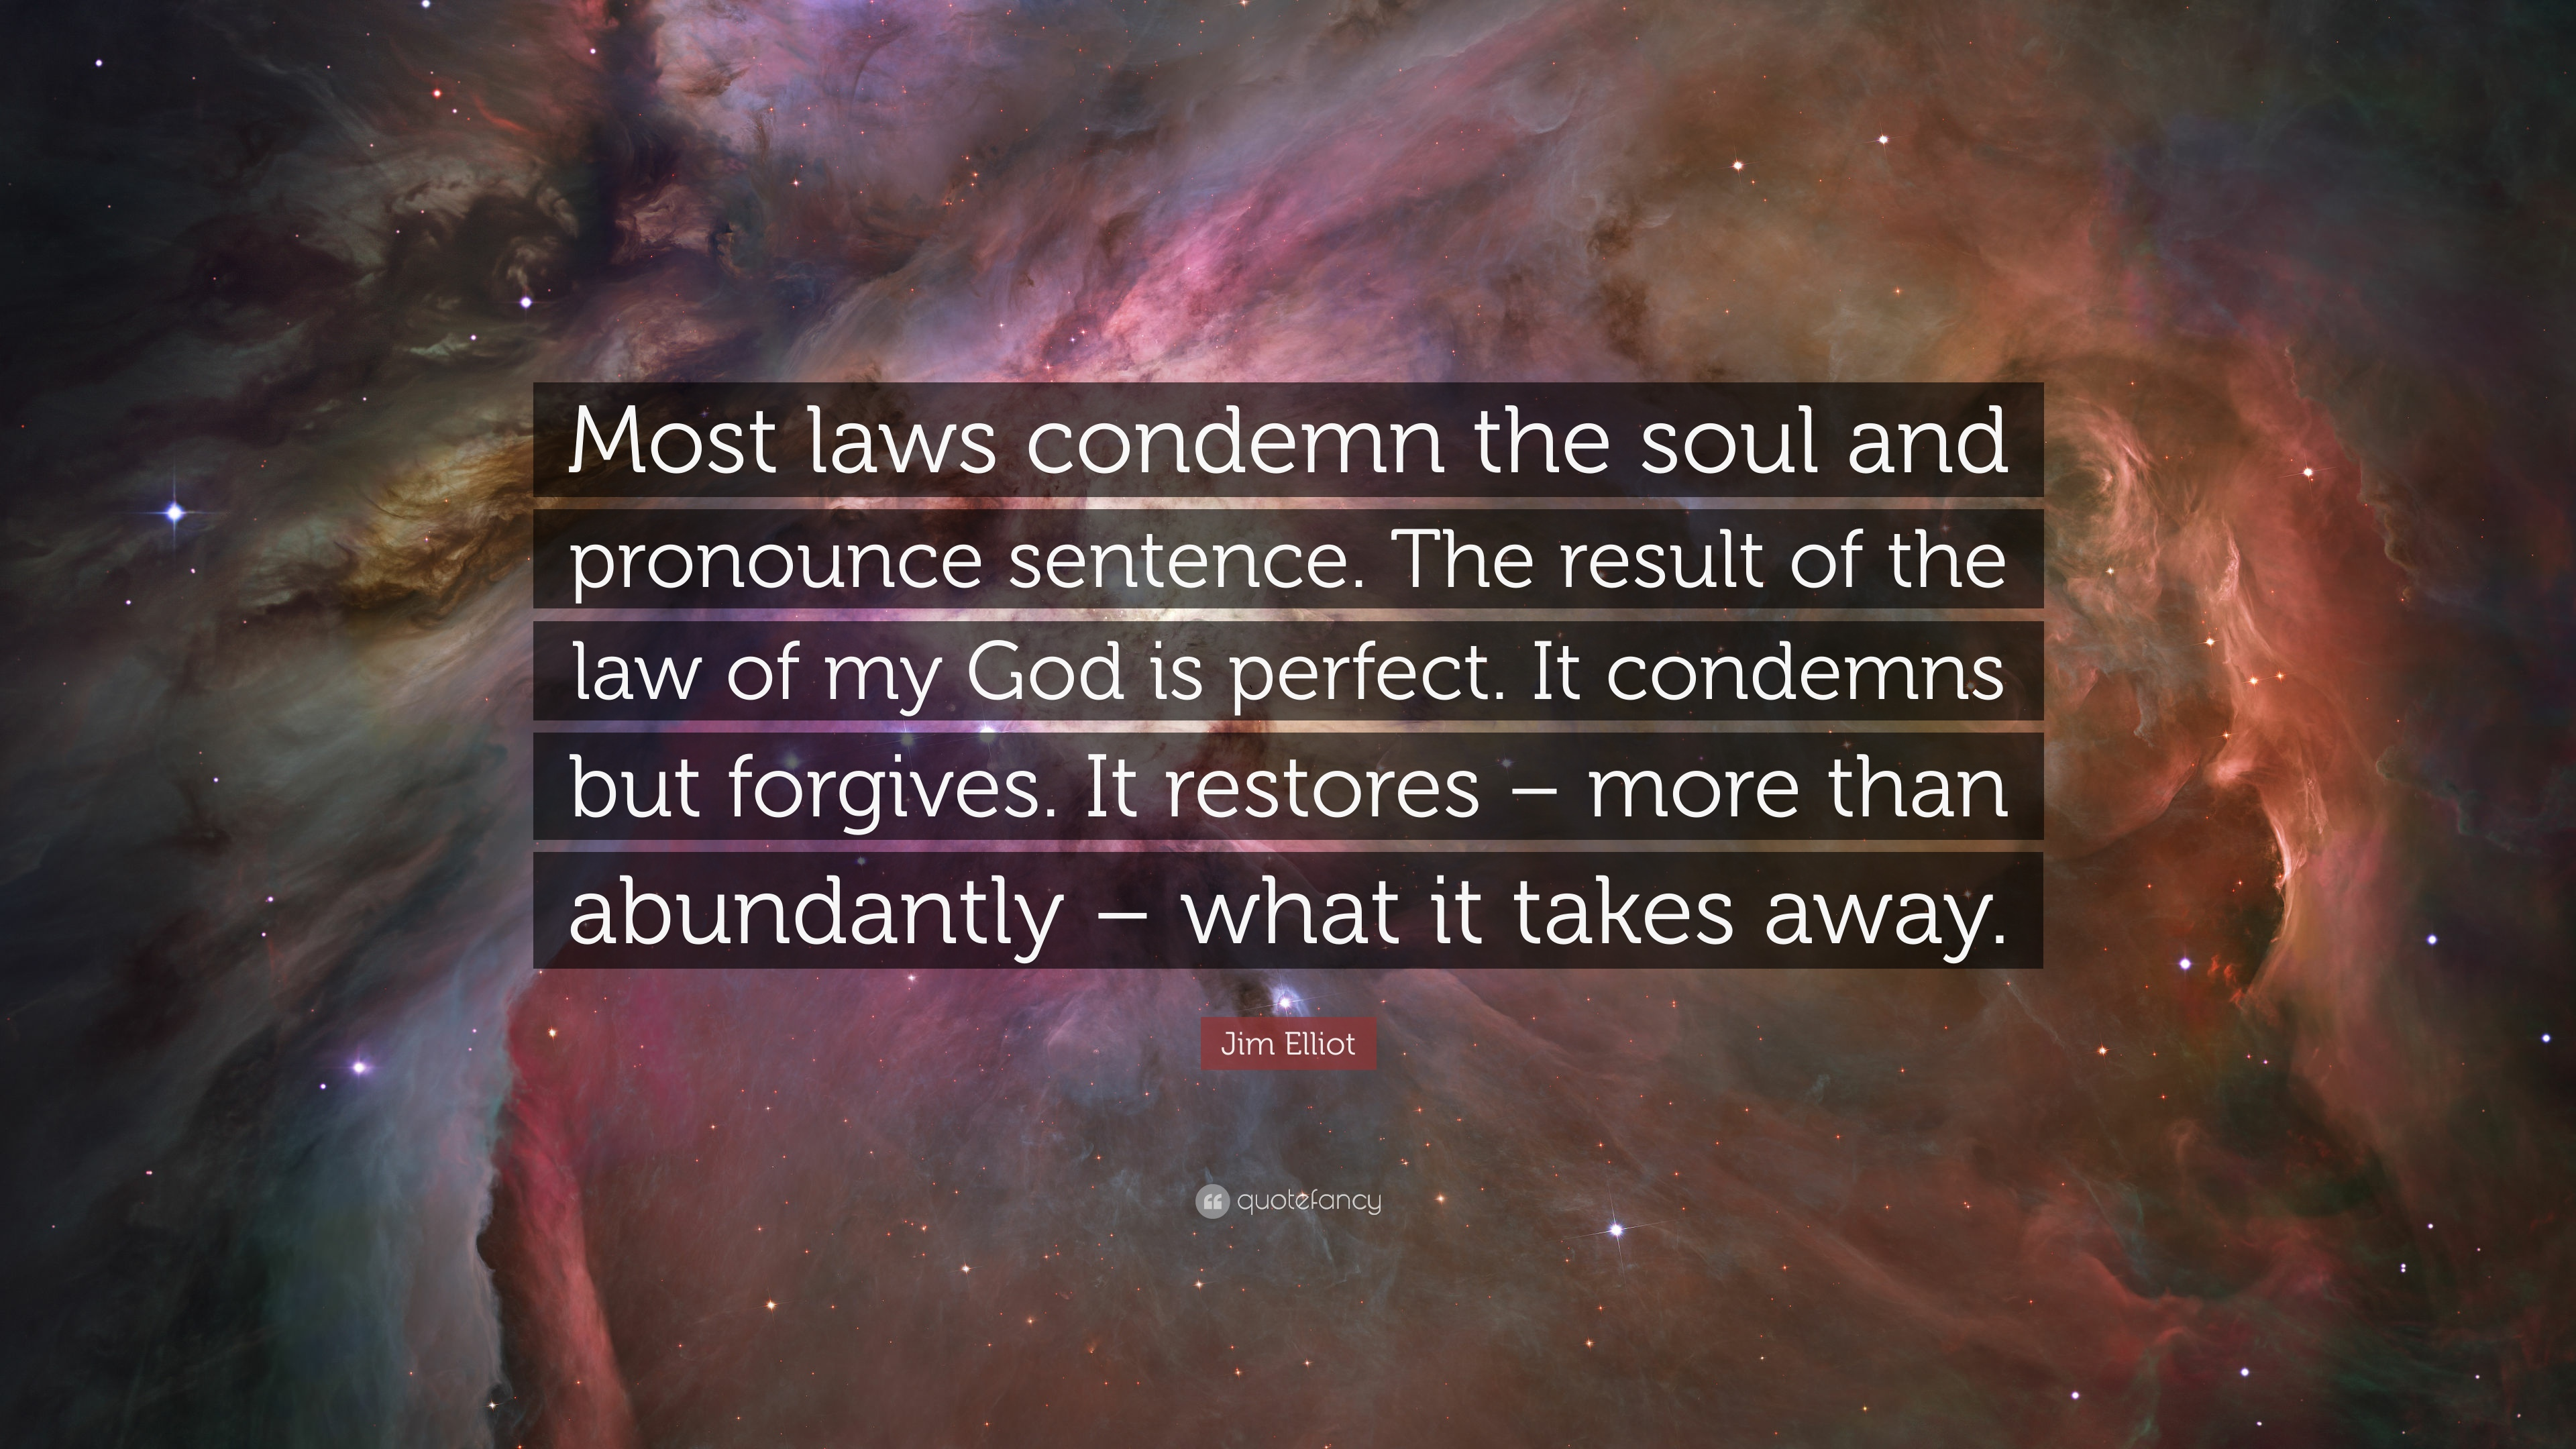 """Jim Elliot Quote: """"Most laws condemn the soul and pronounce sentence. The  result of the law of my God is perfect. It condemns but forgives...."""" (7  wallpapers) - Quotefancy"""